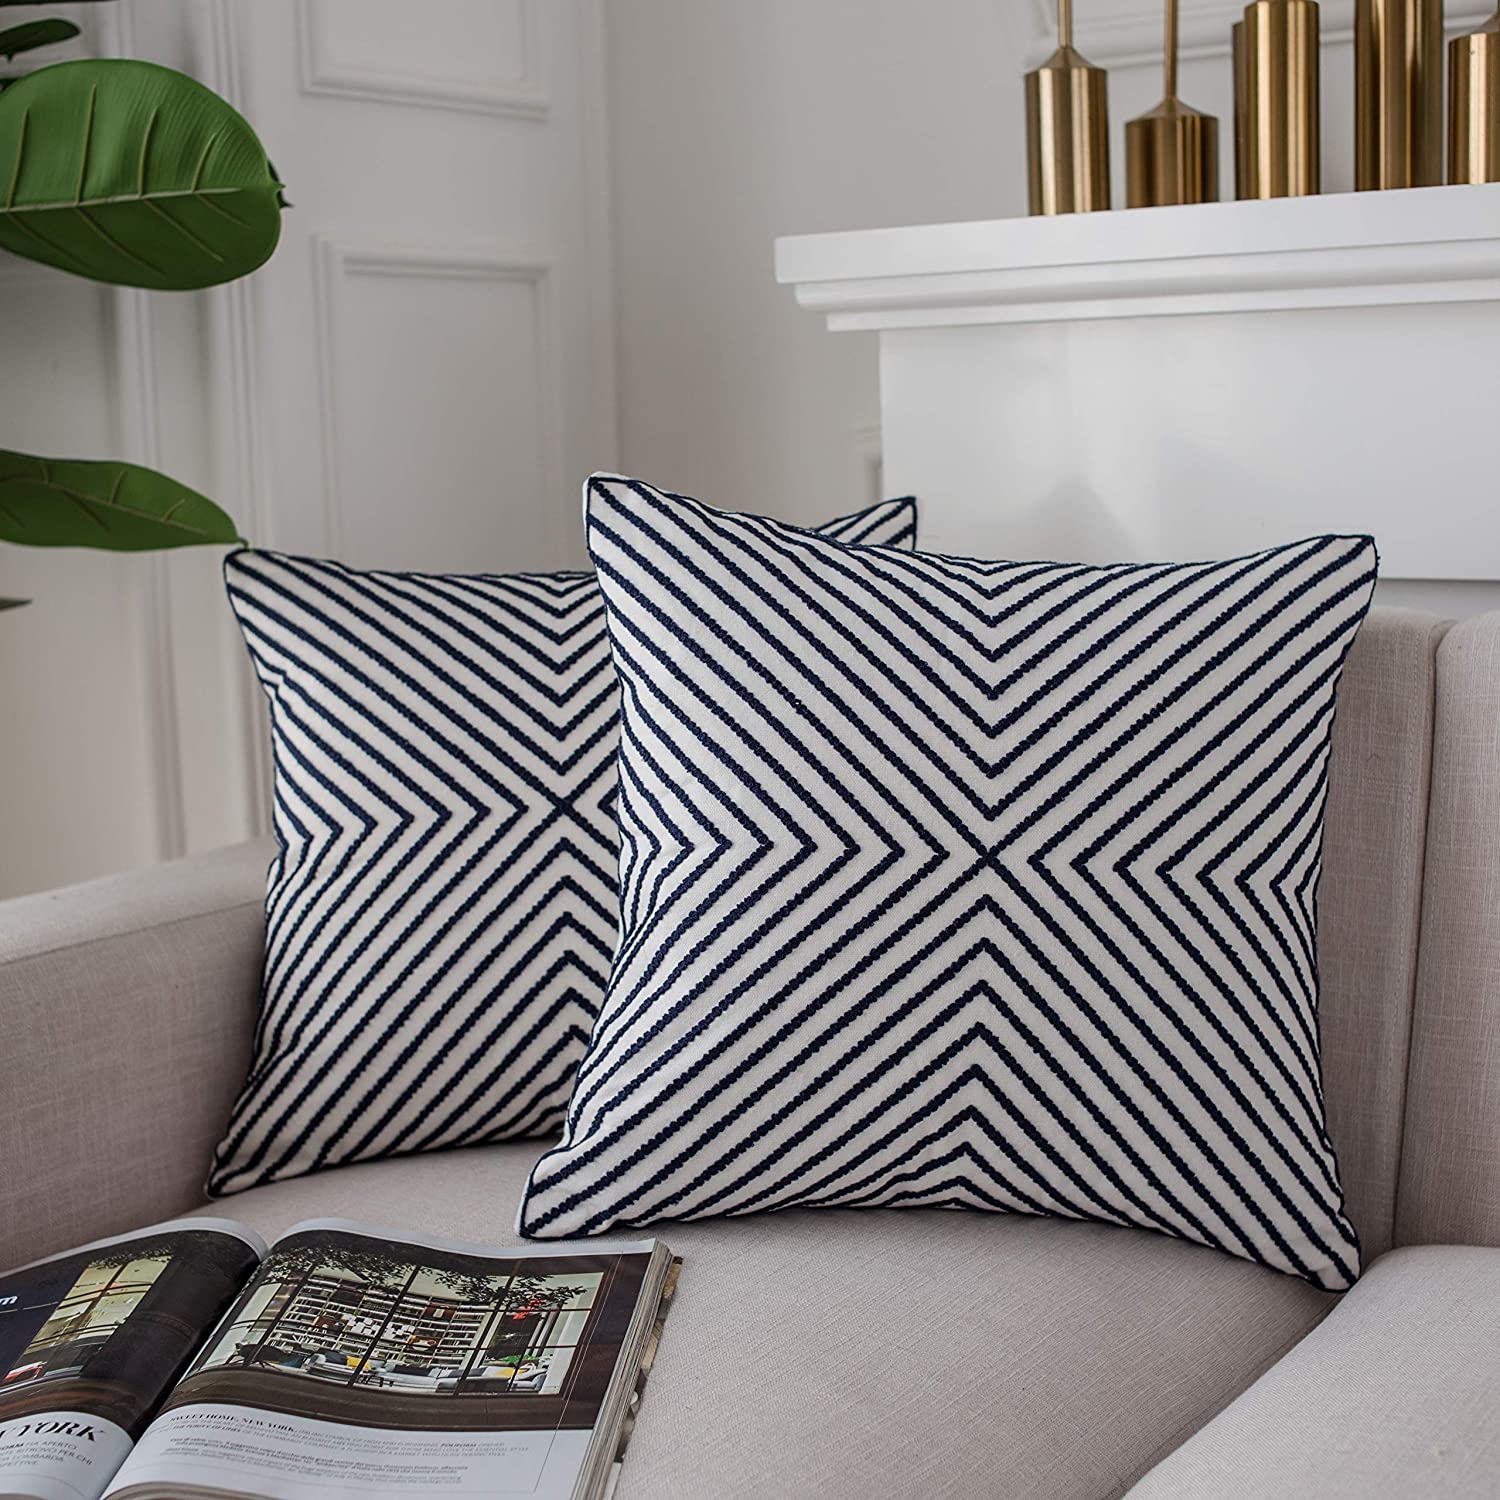 Amazon Com Lifonder Cotton Canvas Embroidered Cushion Covers Home Decor Accent Navy Blue Line Stripe Pattern Throw Pillow Cases For Couch Living Room Sofa Bedding 18x18 Inches Set Of 2 Home Kitchen